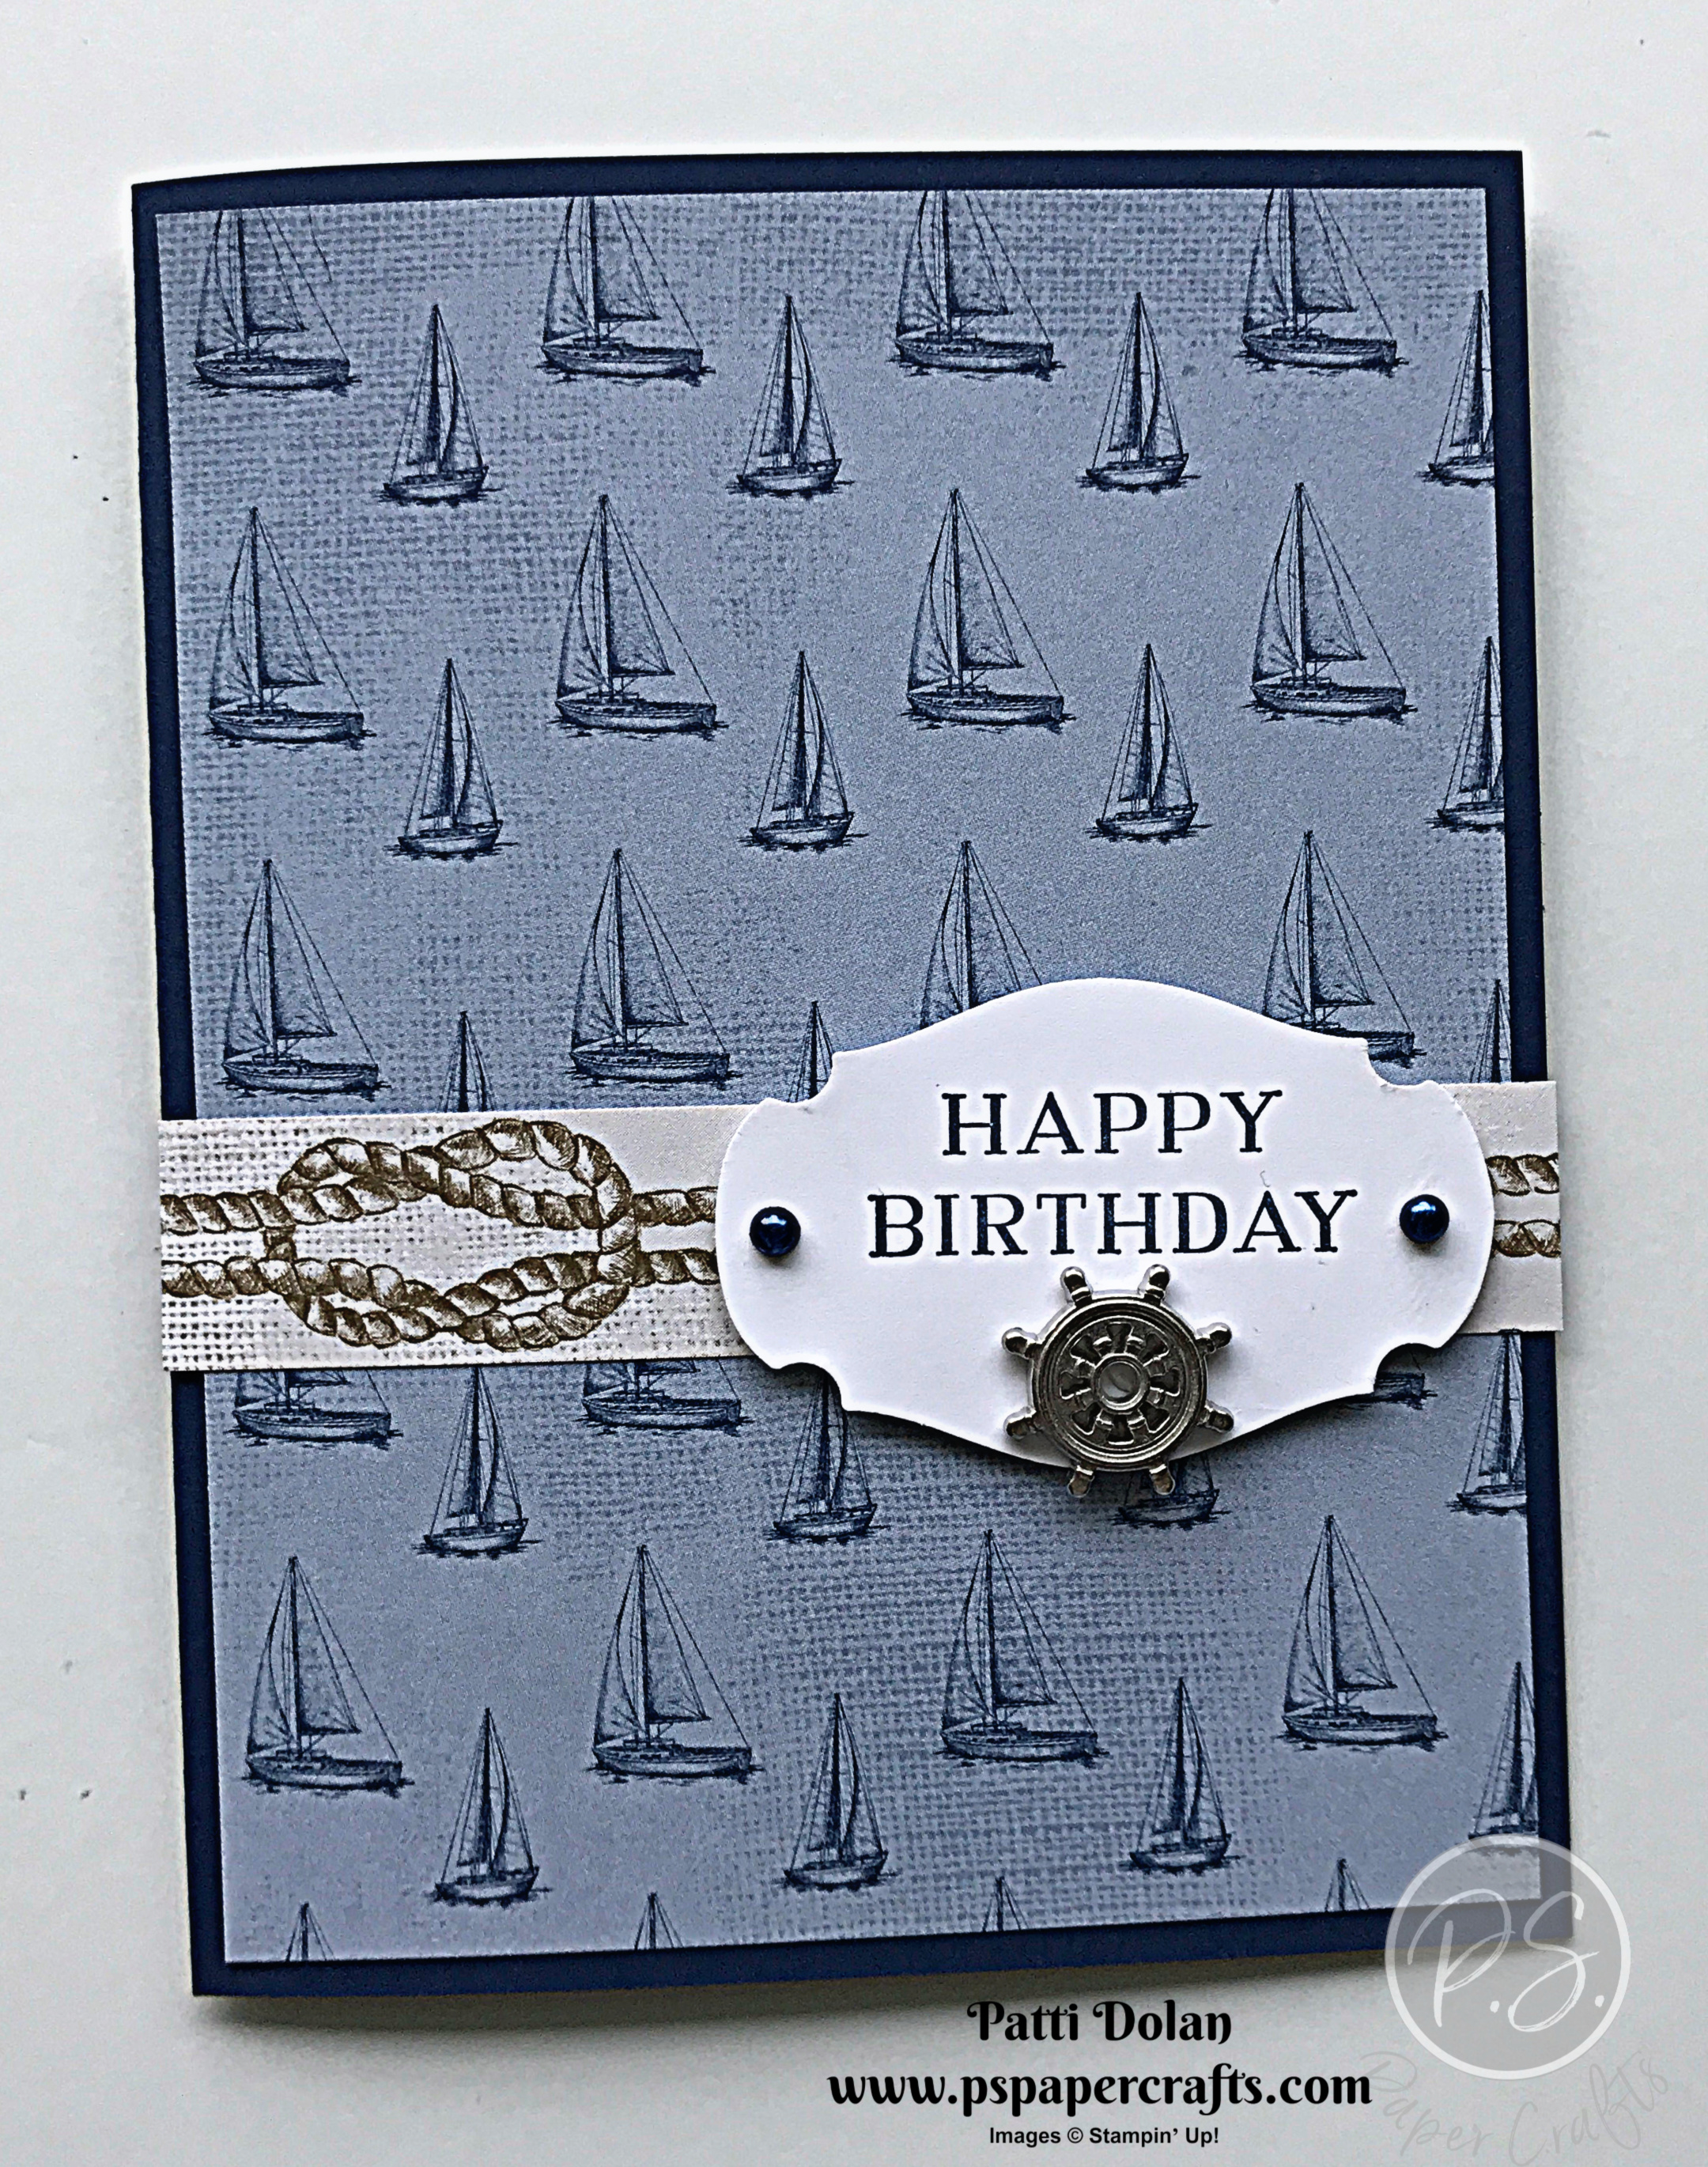 Come Sail Away Birthday2.jpg